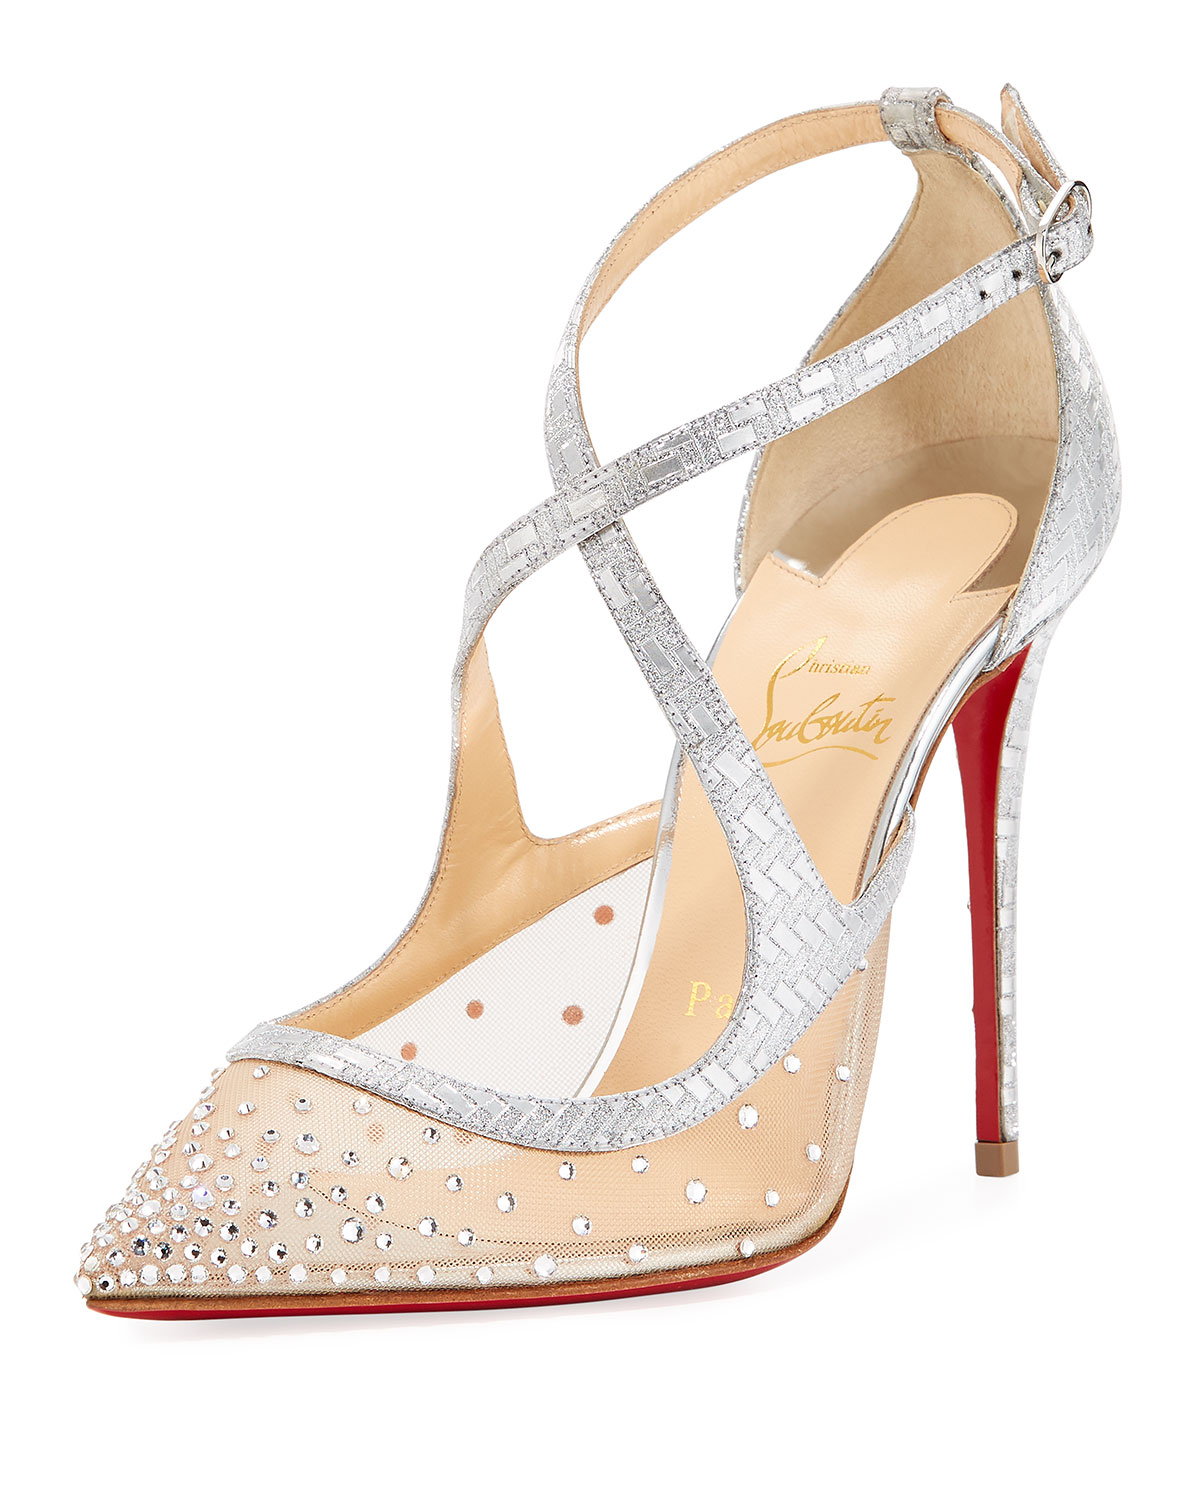 a6557c2203cd Christian Louboutin Twistissima Strass Strappy Red Sole Pumps ...